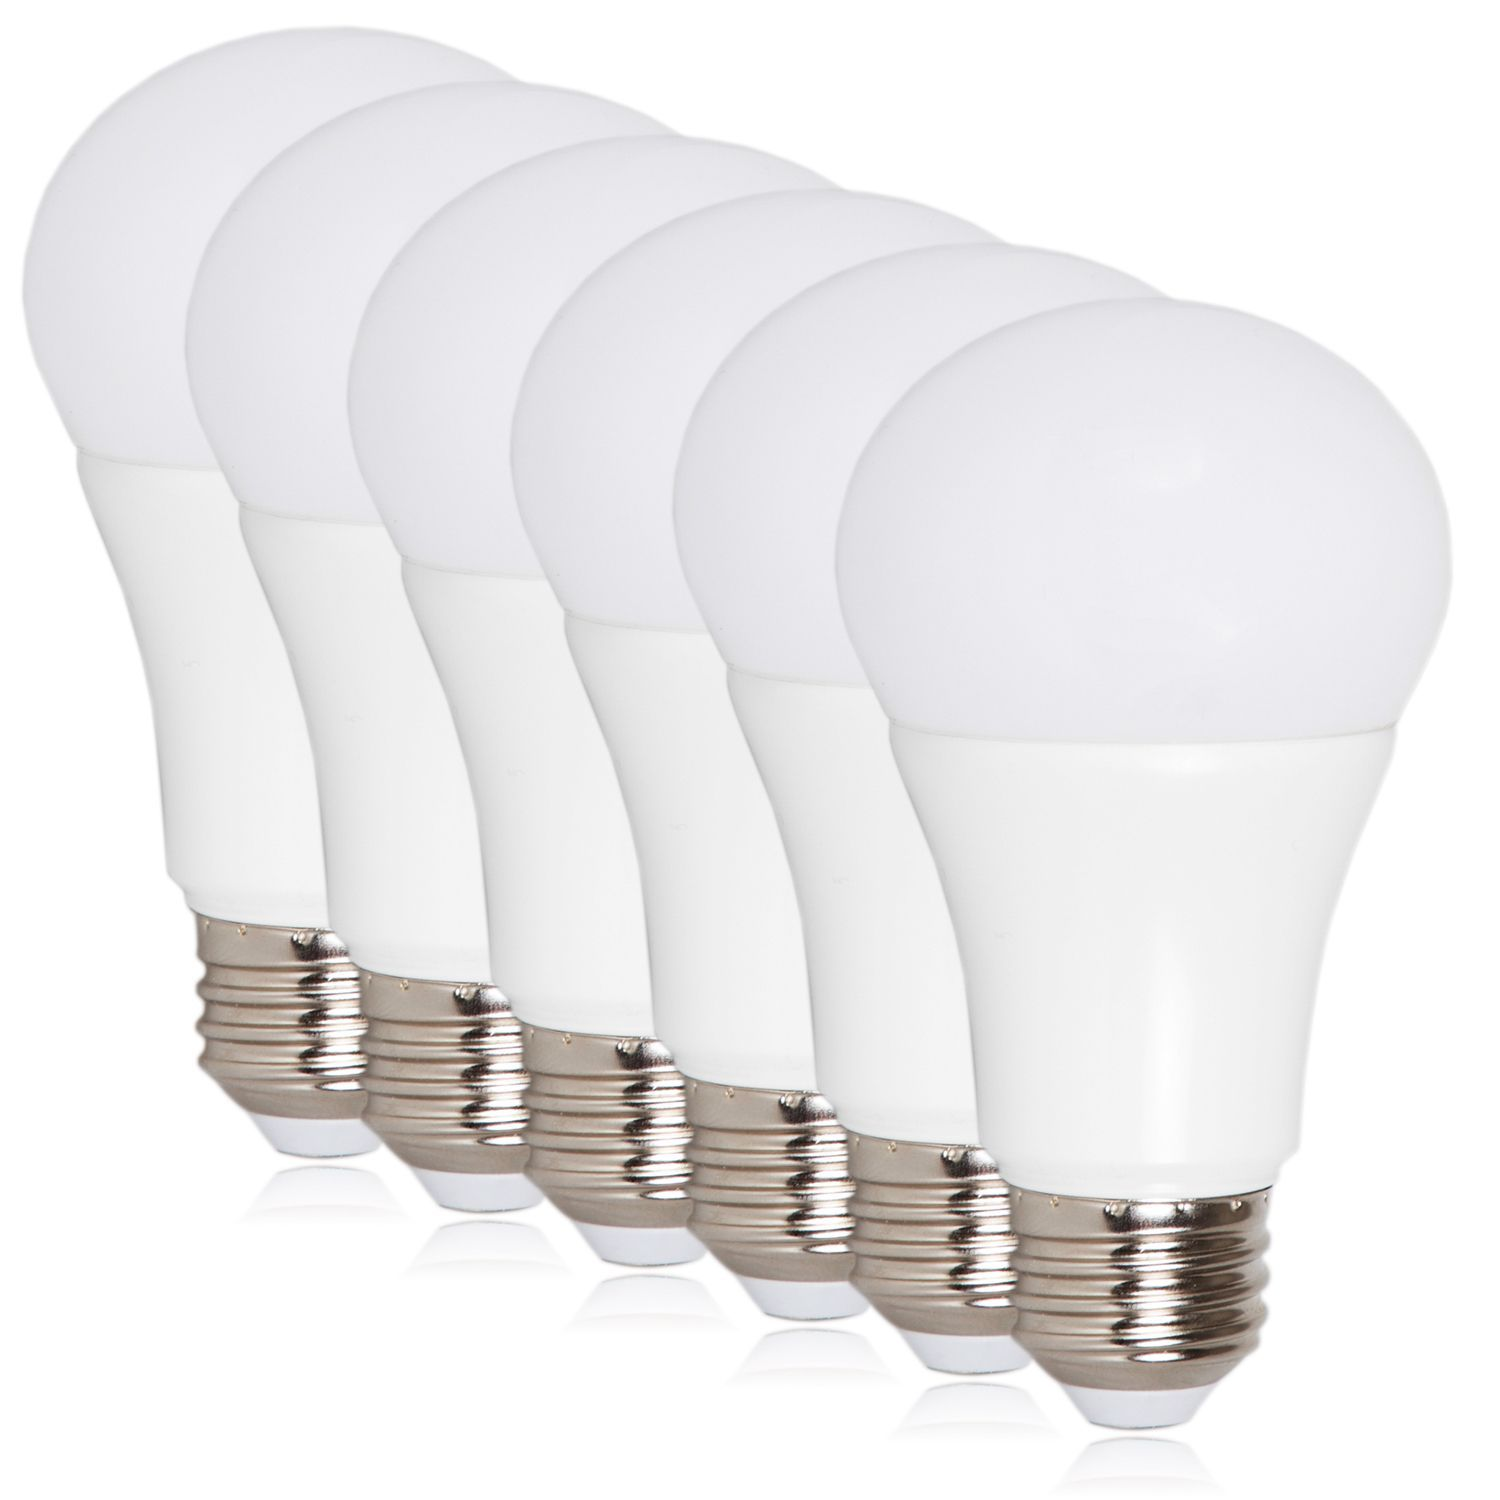 A19 Led 800 Lumens 10 Watt Light Bulbs 6 Pack Daylight 6 Pack White Plastic White Light Bulbs Light Bulb 60 Watt Light Bulb